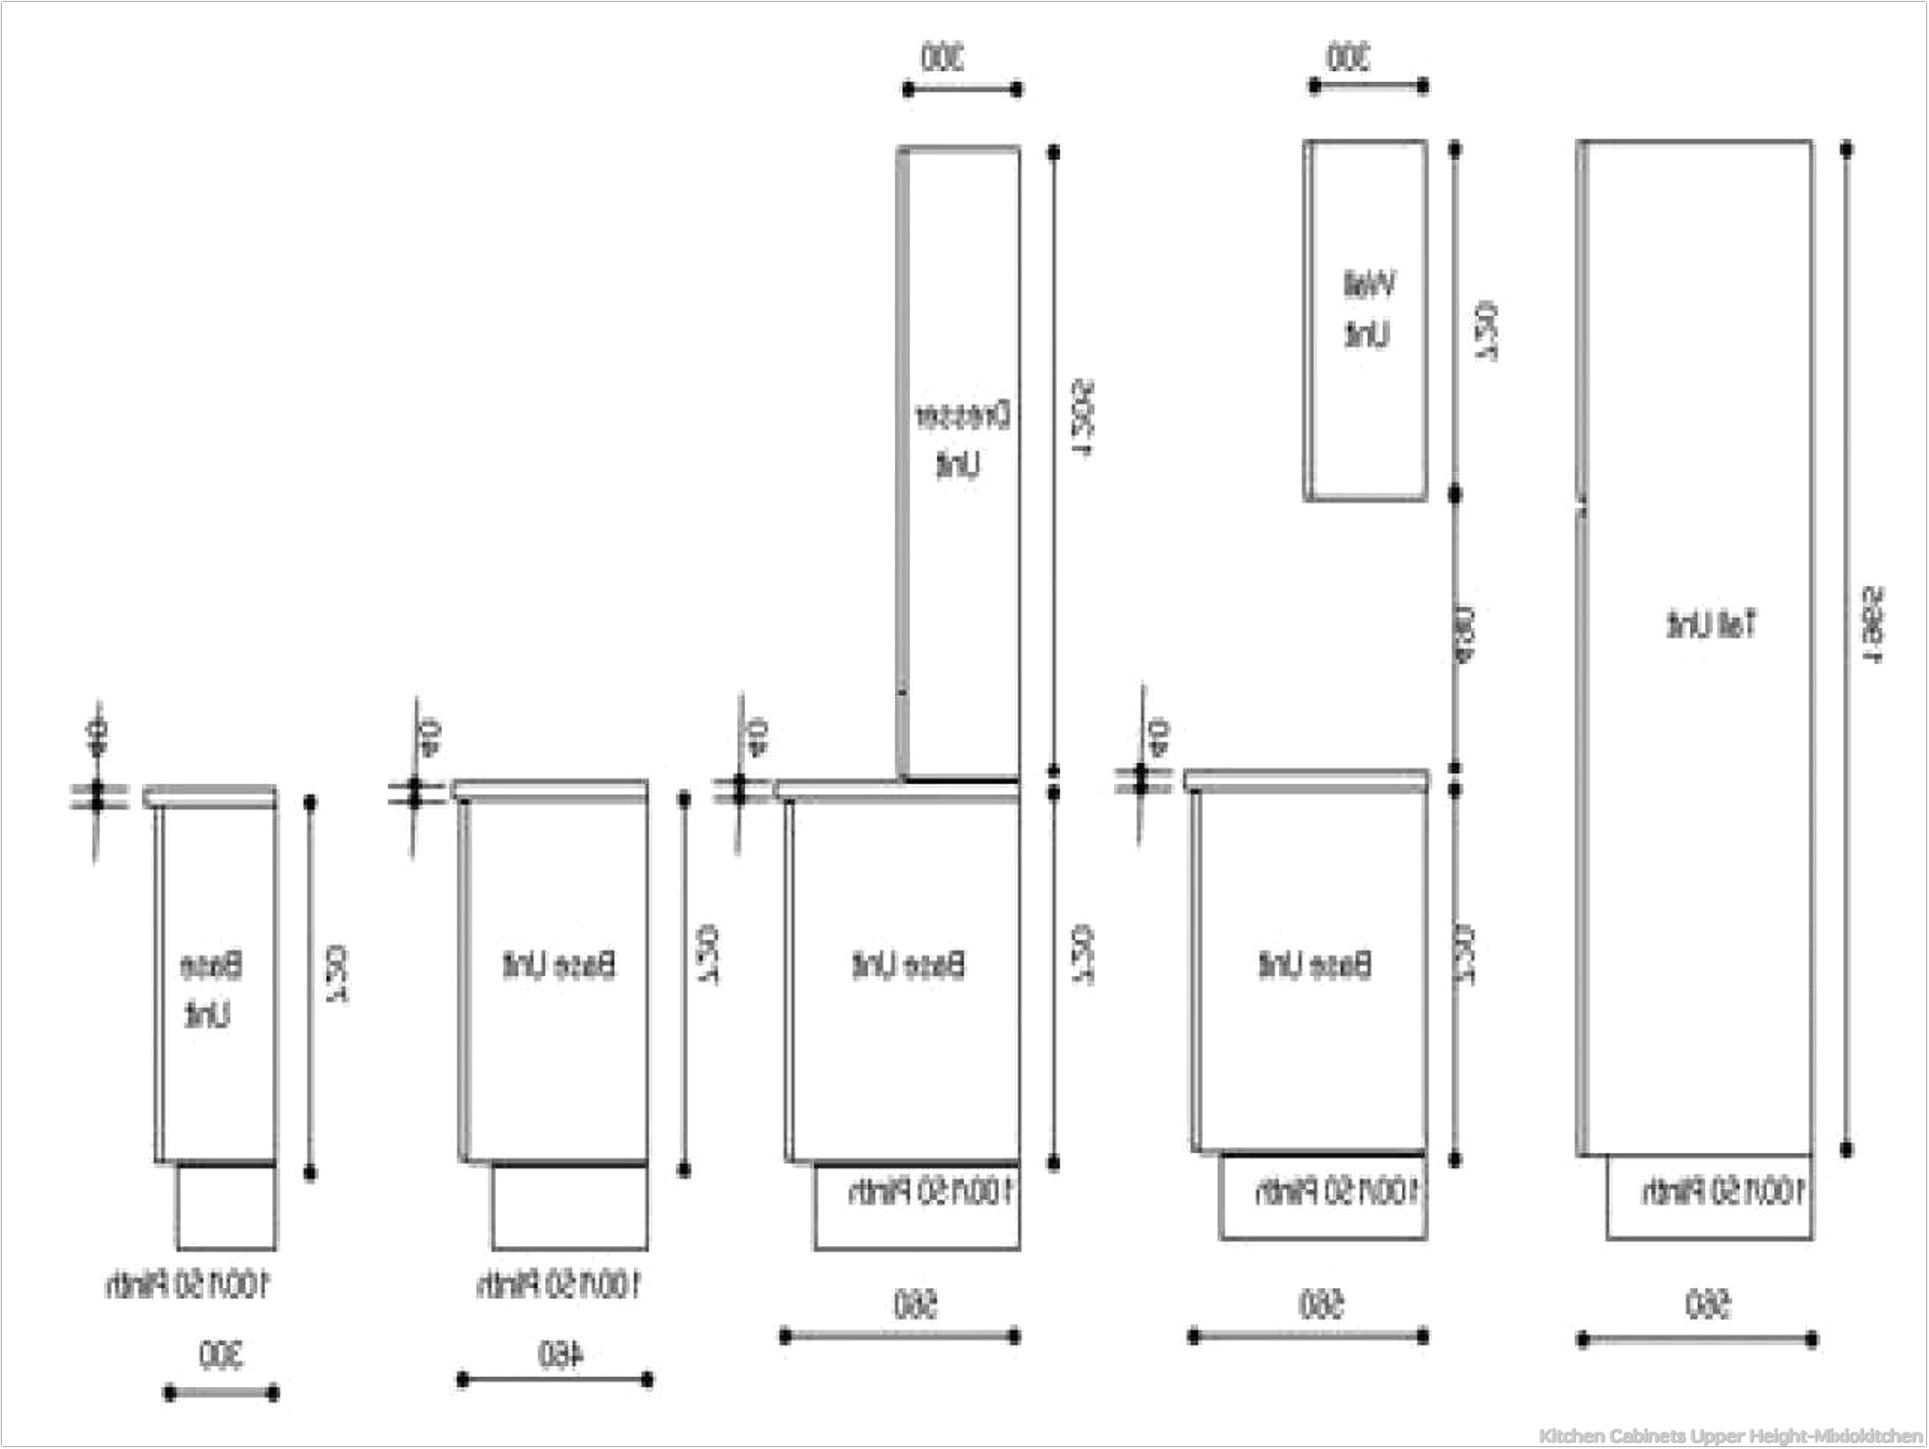 Height Of Kitchen Cabinets Us Cabinet Dimensions Amazing Upper 1929 215 1449 Kitchen Cabinets Kitchen Cabinets Height Kitchen Wall Cabinets